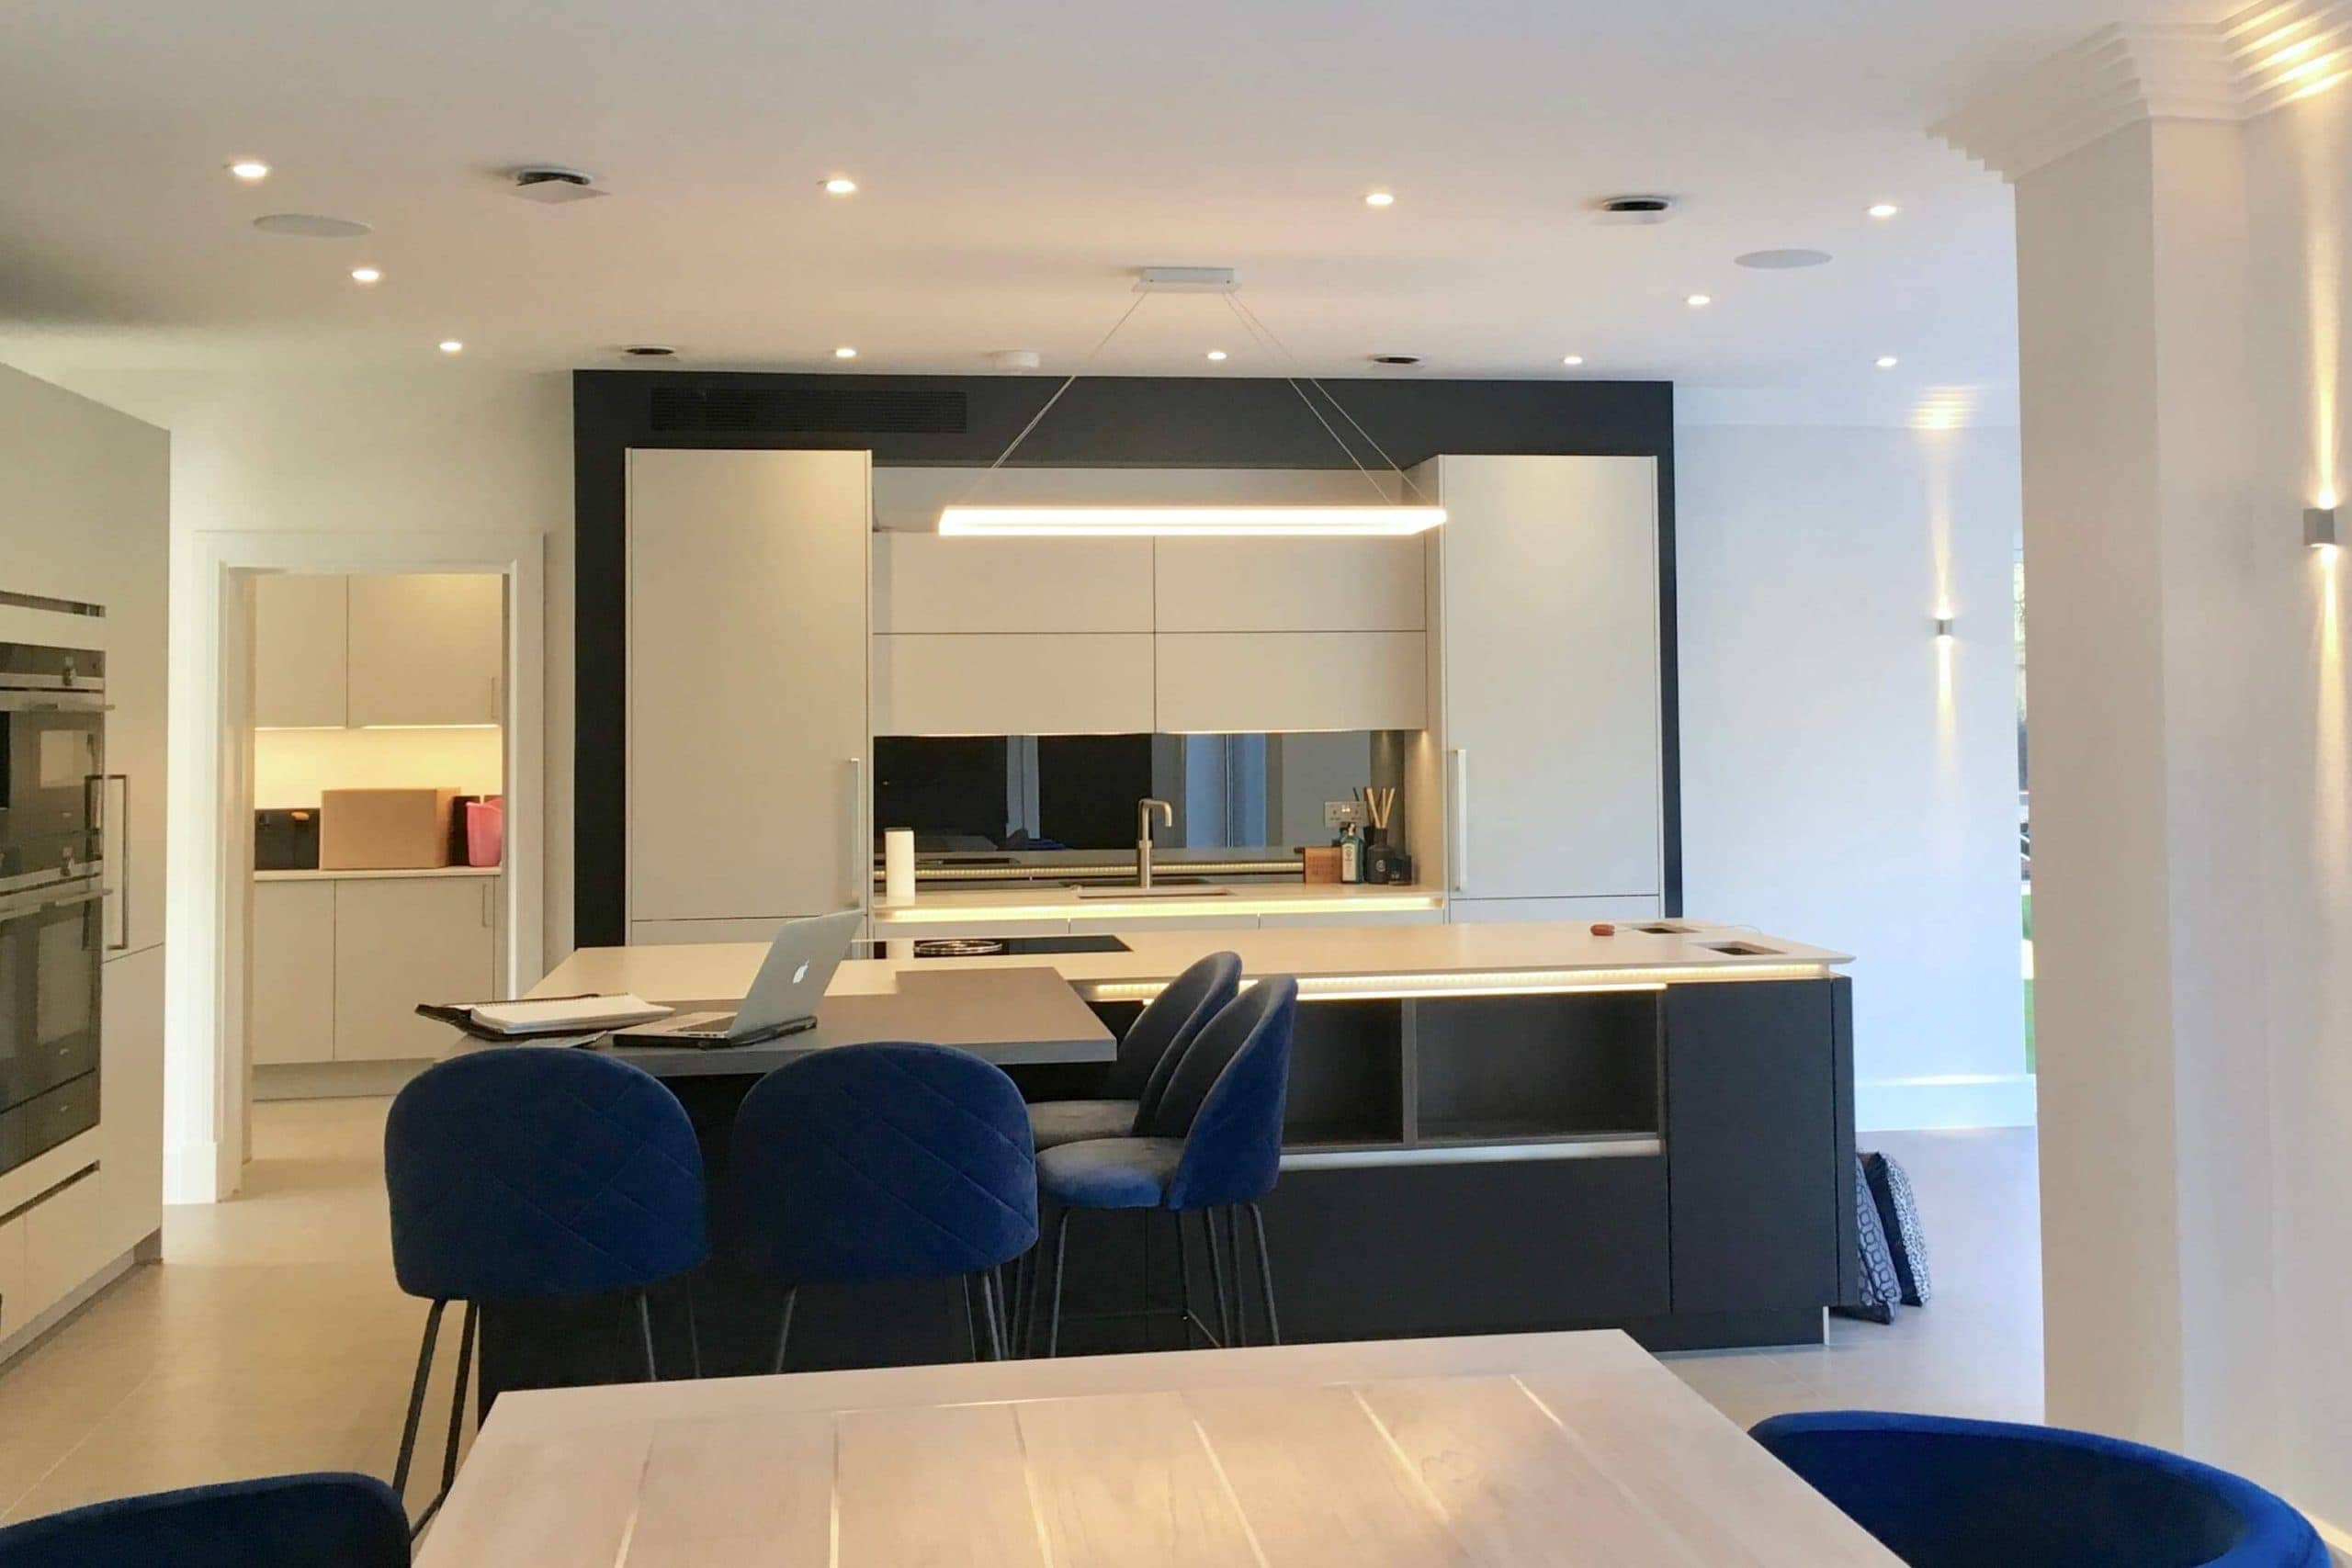 Scandia Hus new build kitchen with invisible Mitsubishi air con grill and MVHR system by SubCool FM view from dining area